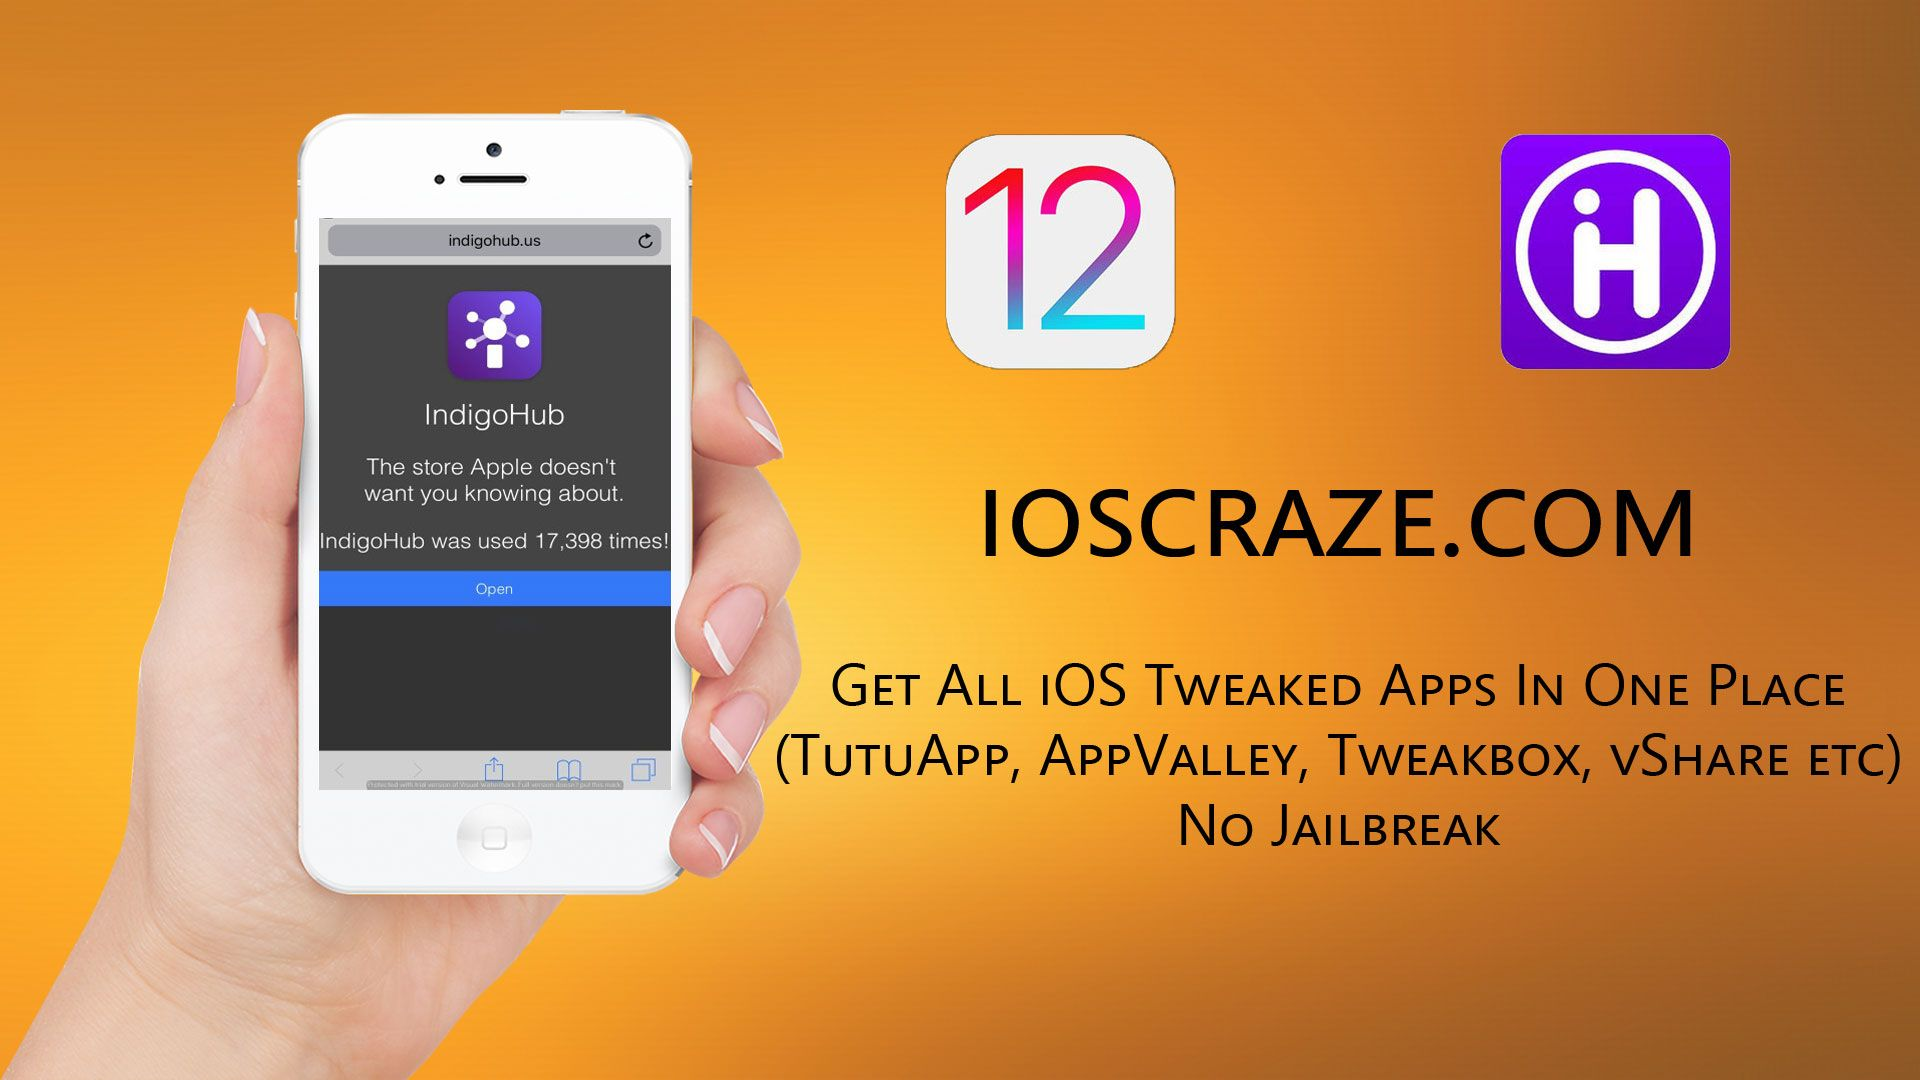 How to get all iOS tweaked apps in one App without jailbreak